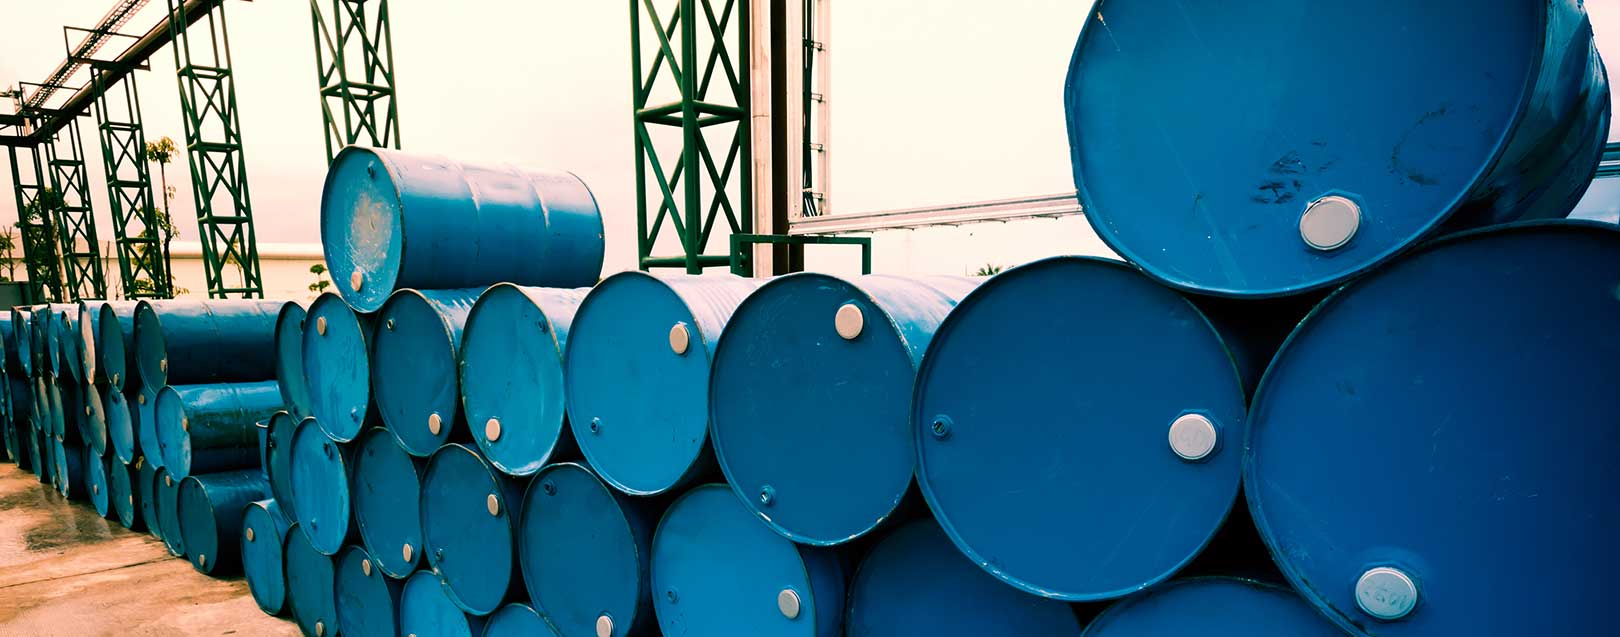 India's crude imports from Russia on the rise